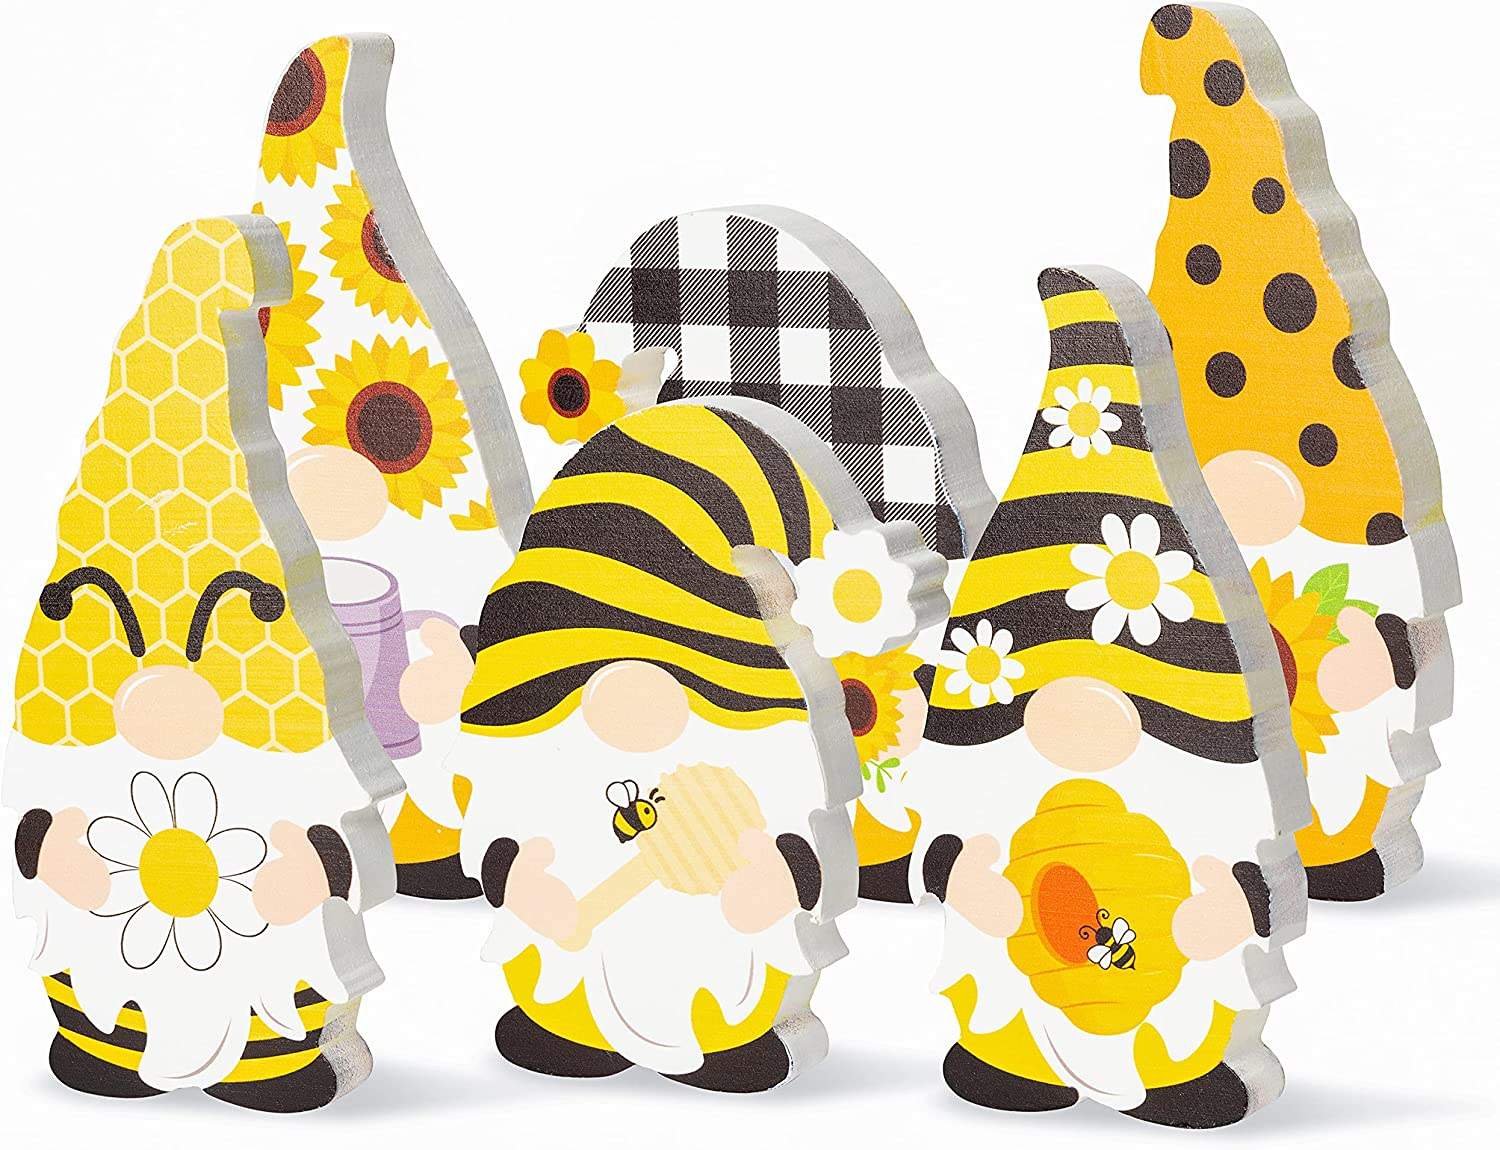 R HORSE 3Pcs Bee Sunflower Gnome Wooden Sign Honeybee Gnome Wooden FreestandingTable Decor Double Printed Gnome Tabletop CenterpieceOrnamentDecoration for Summer Beach Home Office Party